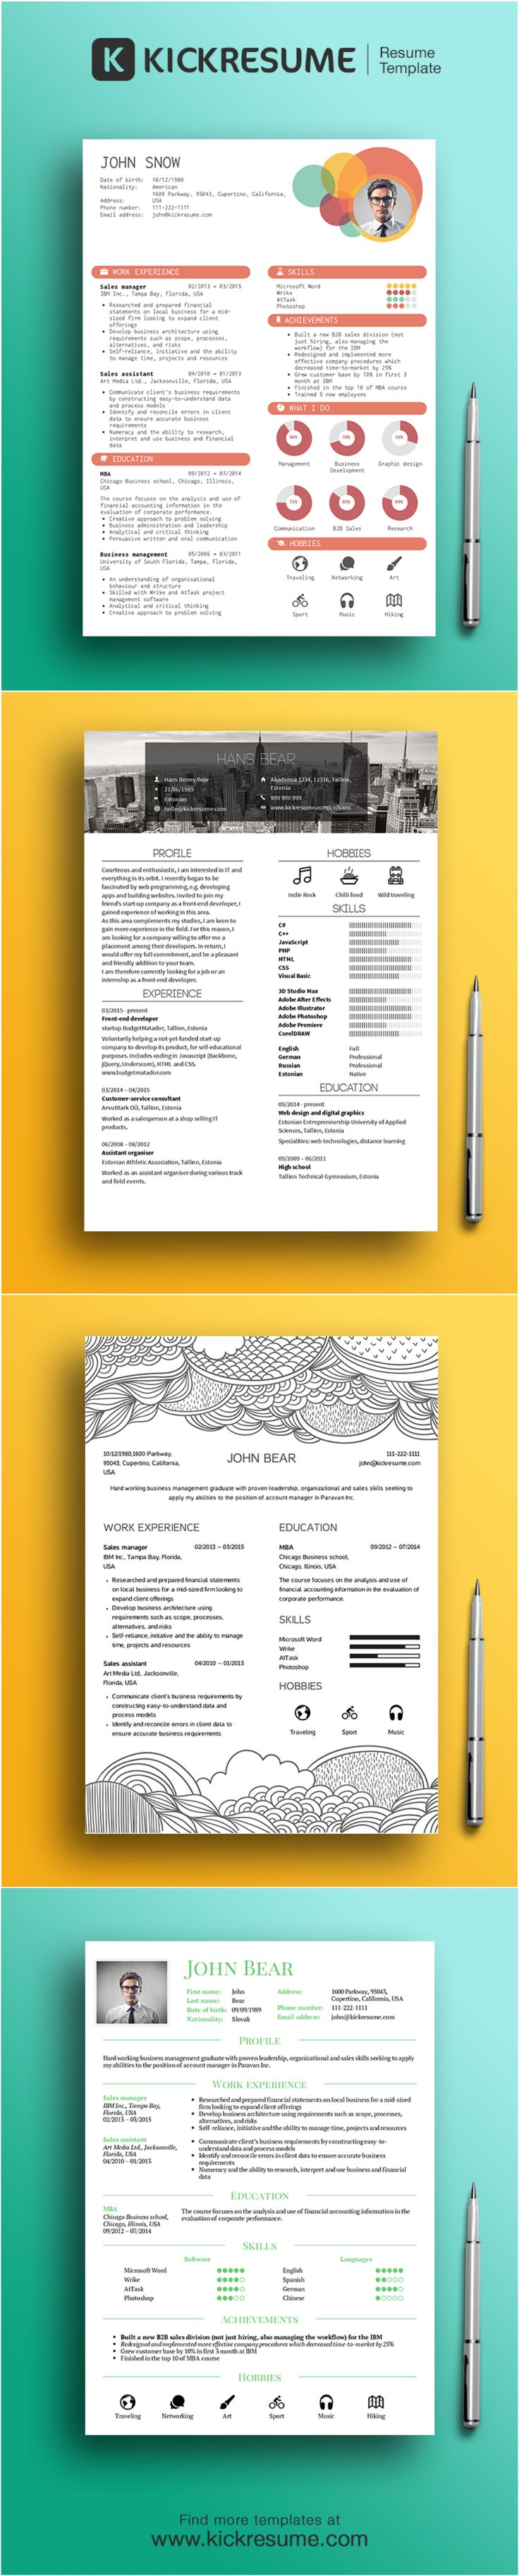 best images about infographic visual resumes perfect resume and cover letter are just a click away >> resume design creative resume mini stic resume cover letter design resume sample